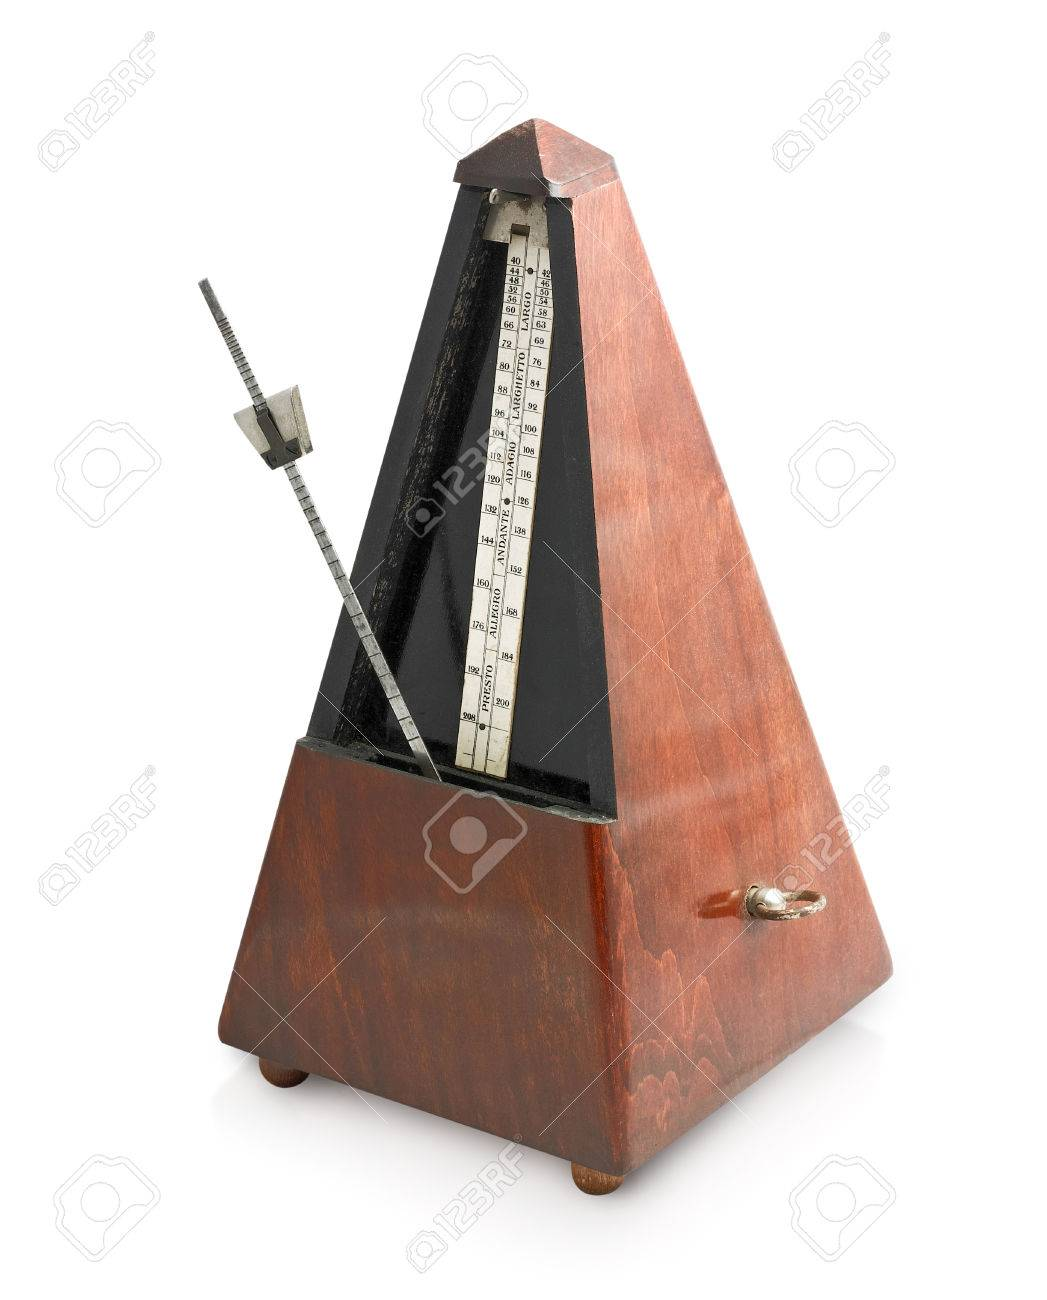 metronome isolated on a white background Stock Photo - 22594523